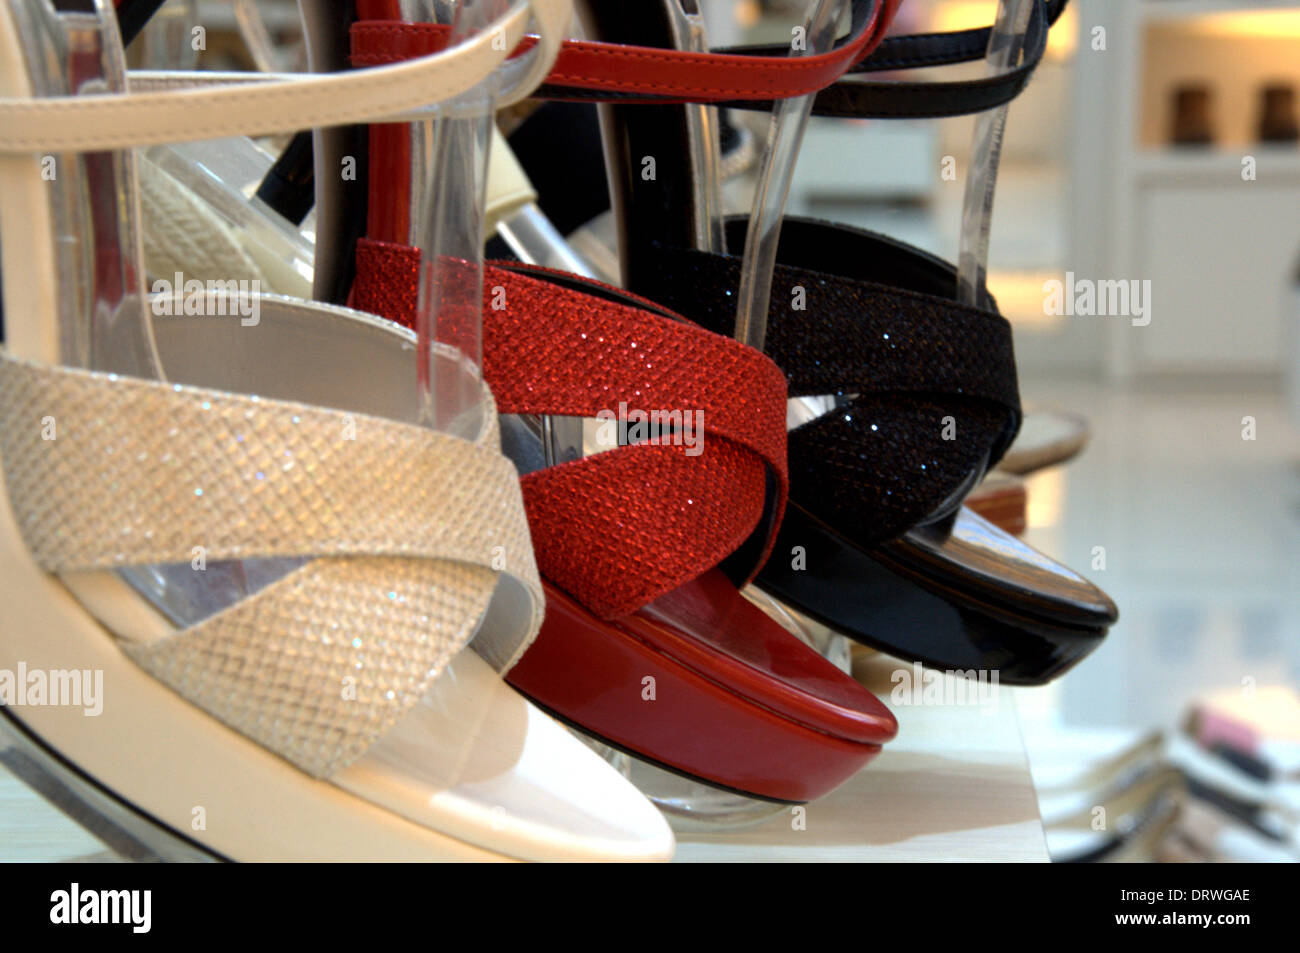 Ladies' high heels - Stock Image